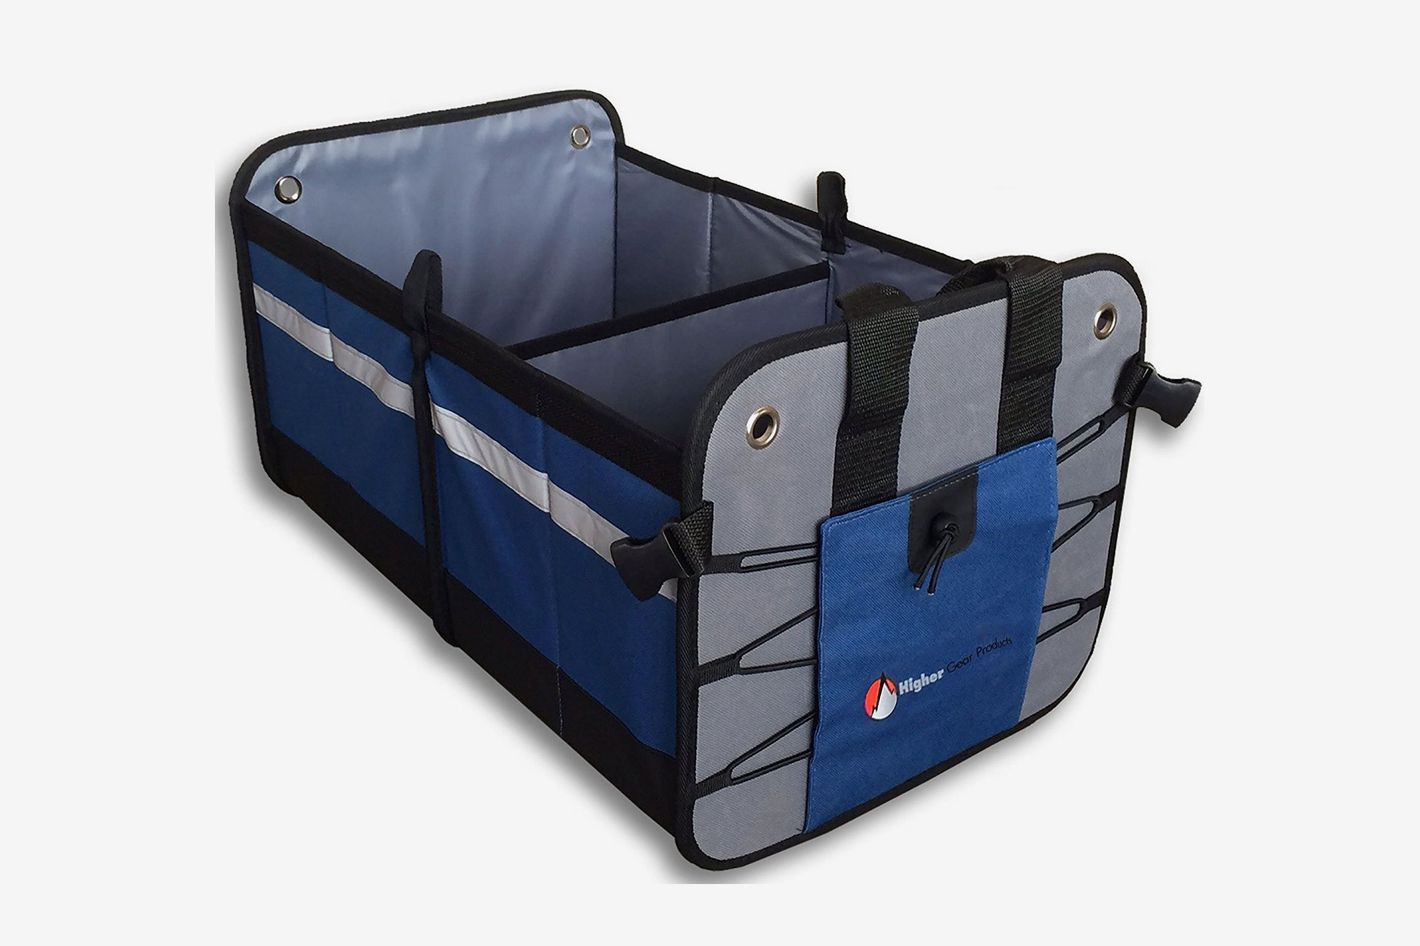 Higher Gear Products Car Trunk Organizer | 2 Interior Compartments + Mesh Pocket, Rigid Fold Down Bottom, No Slip Feet